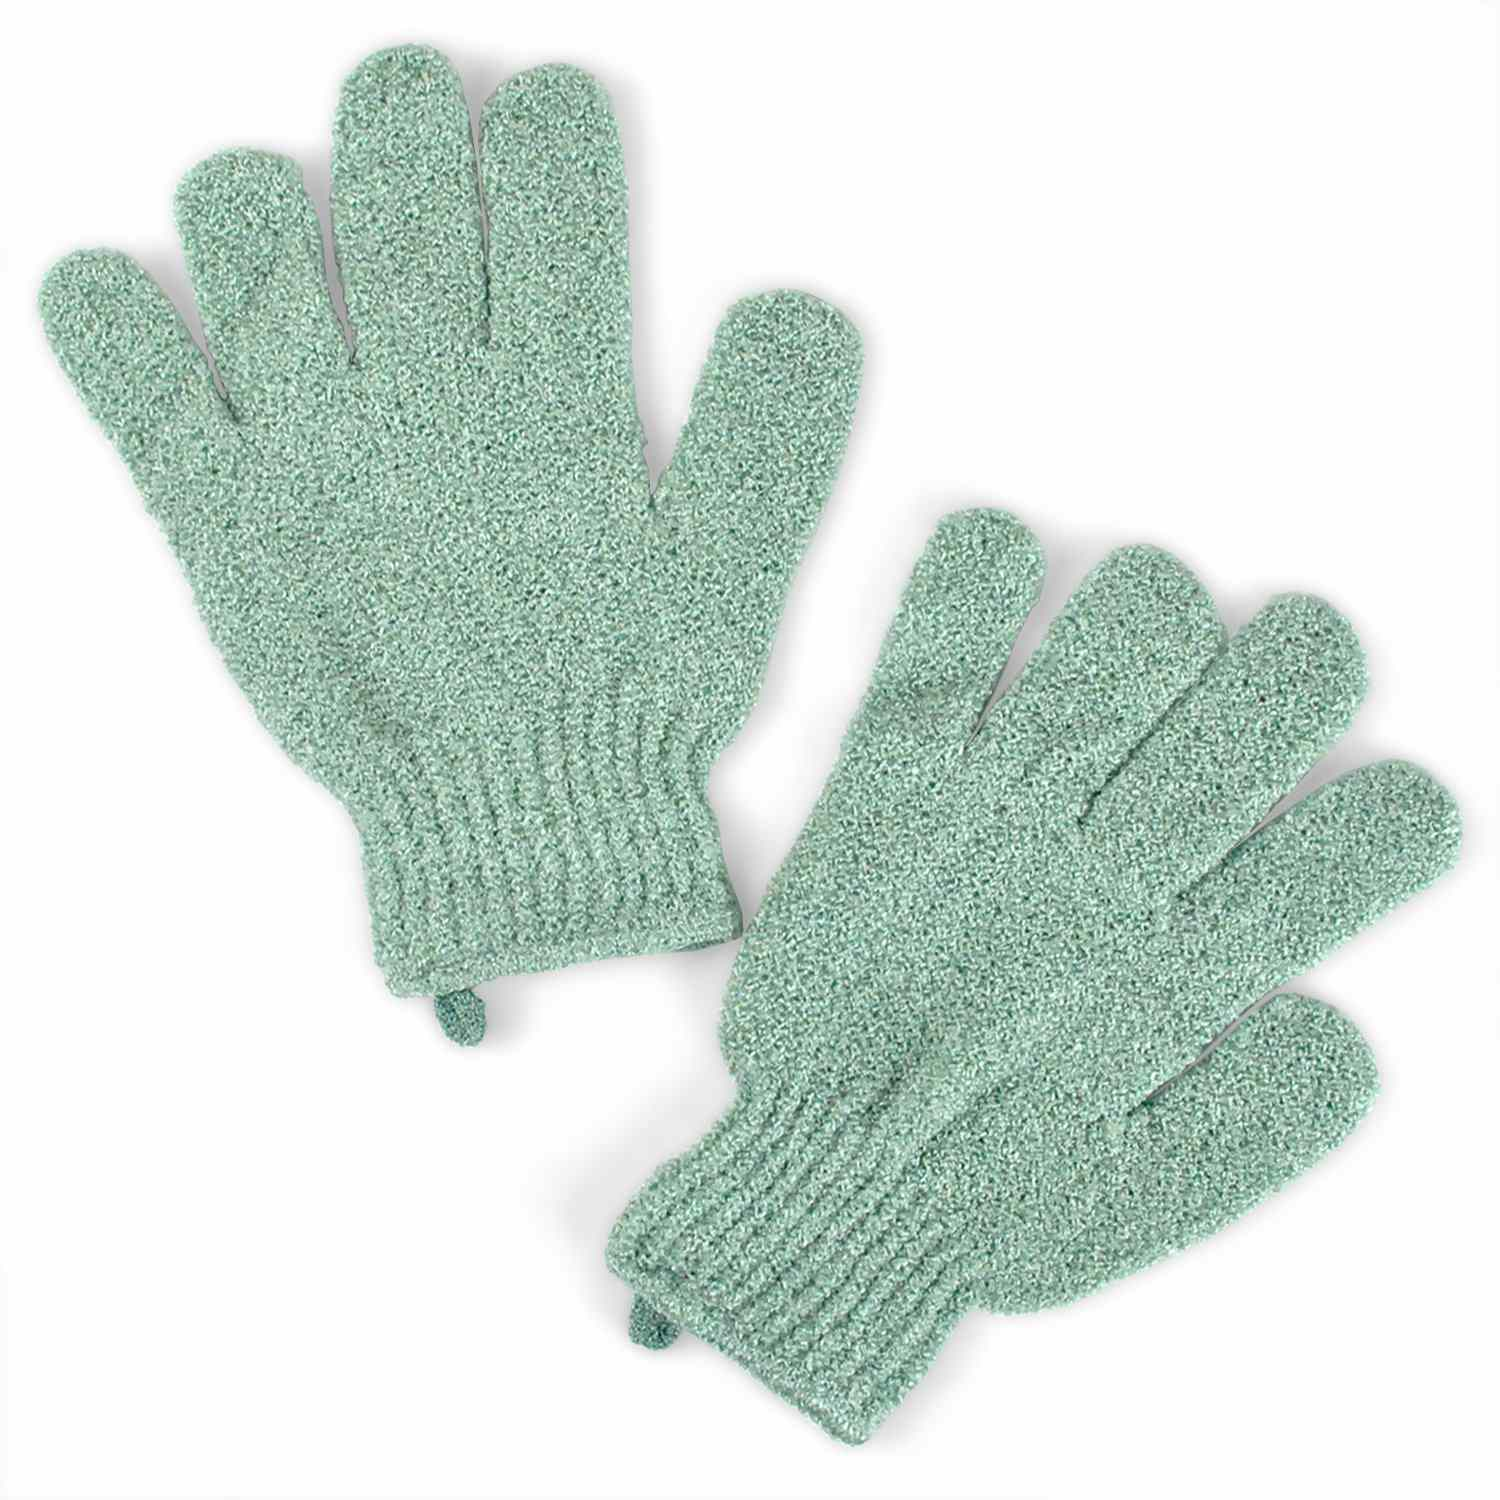 Cleaning gloves